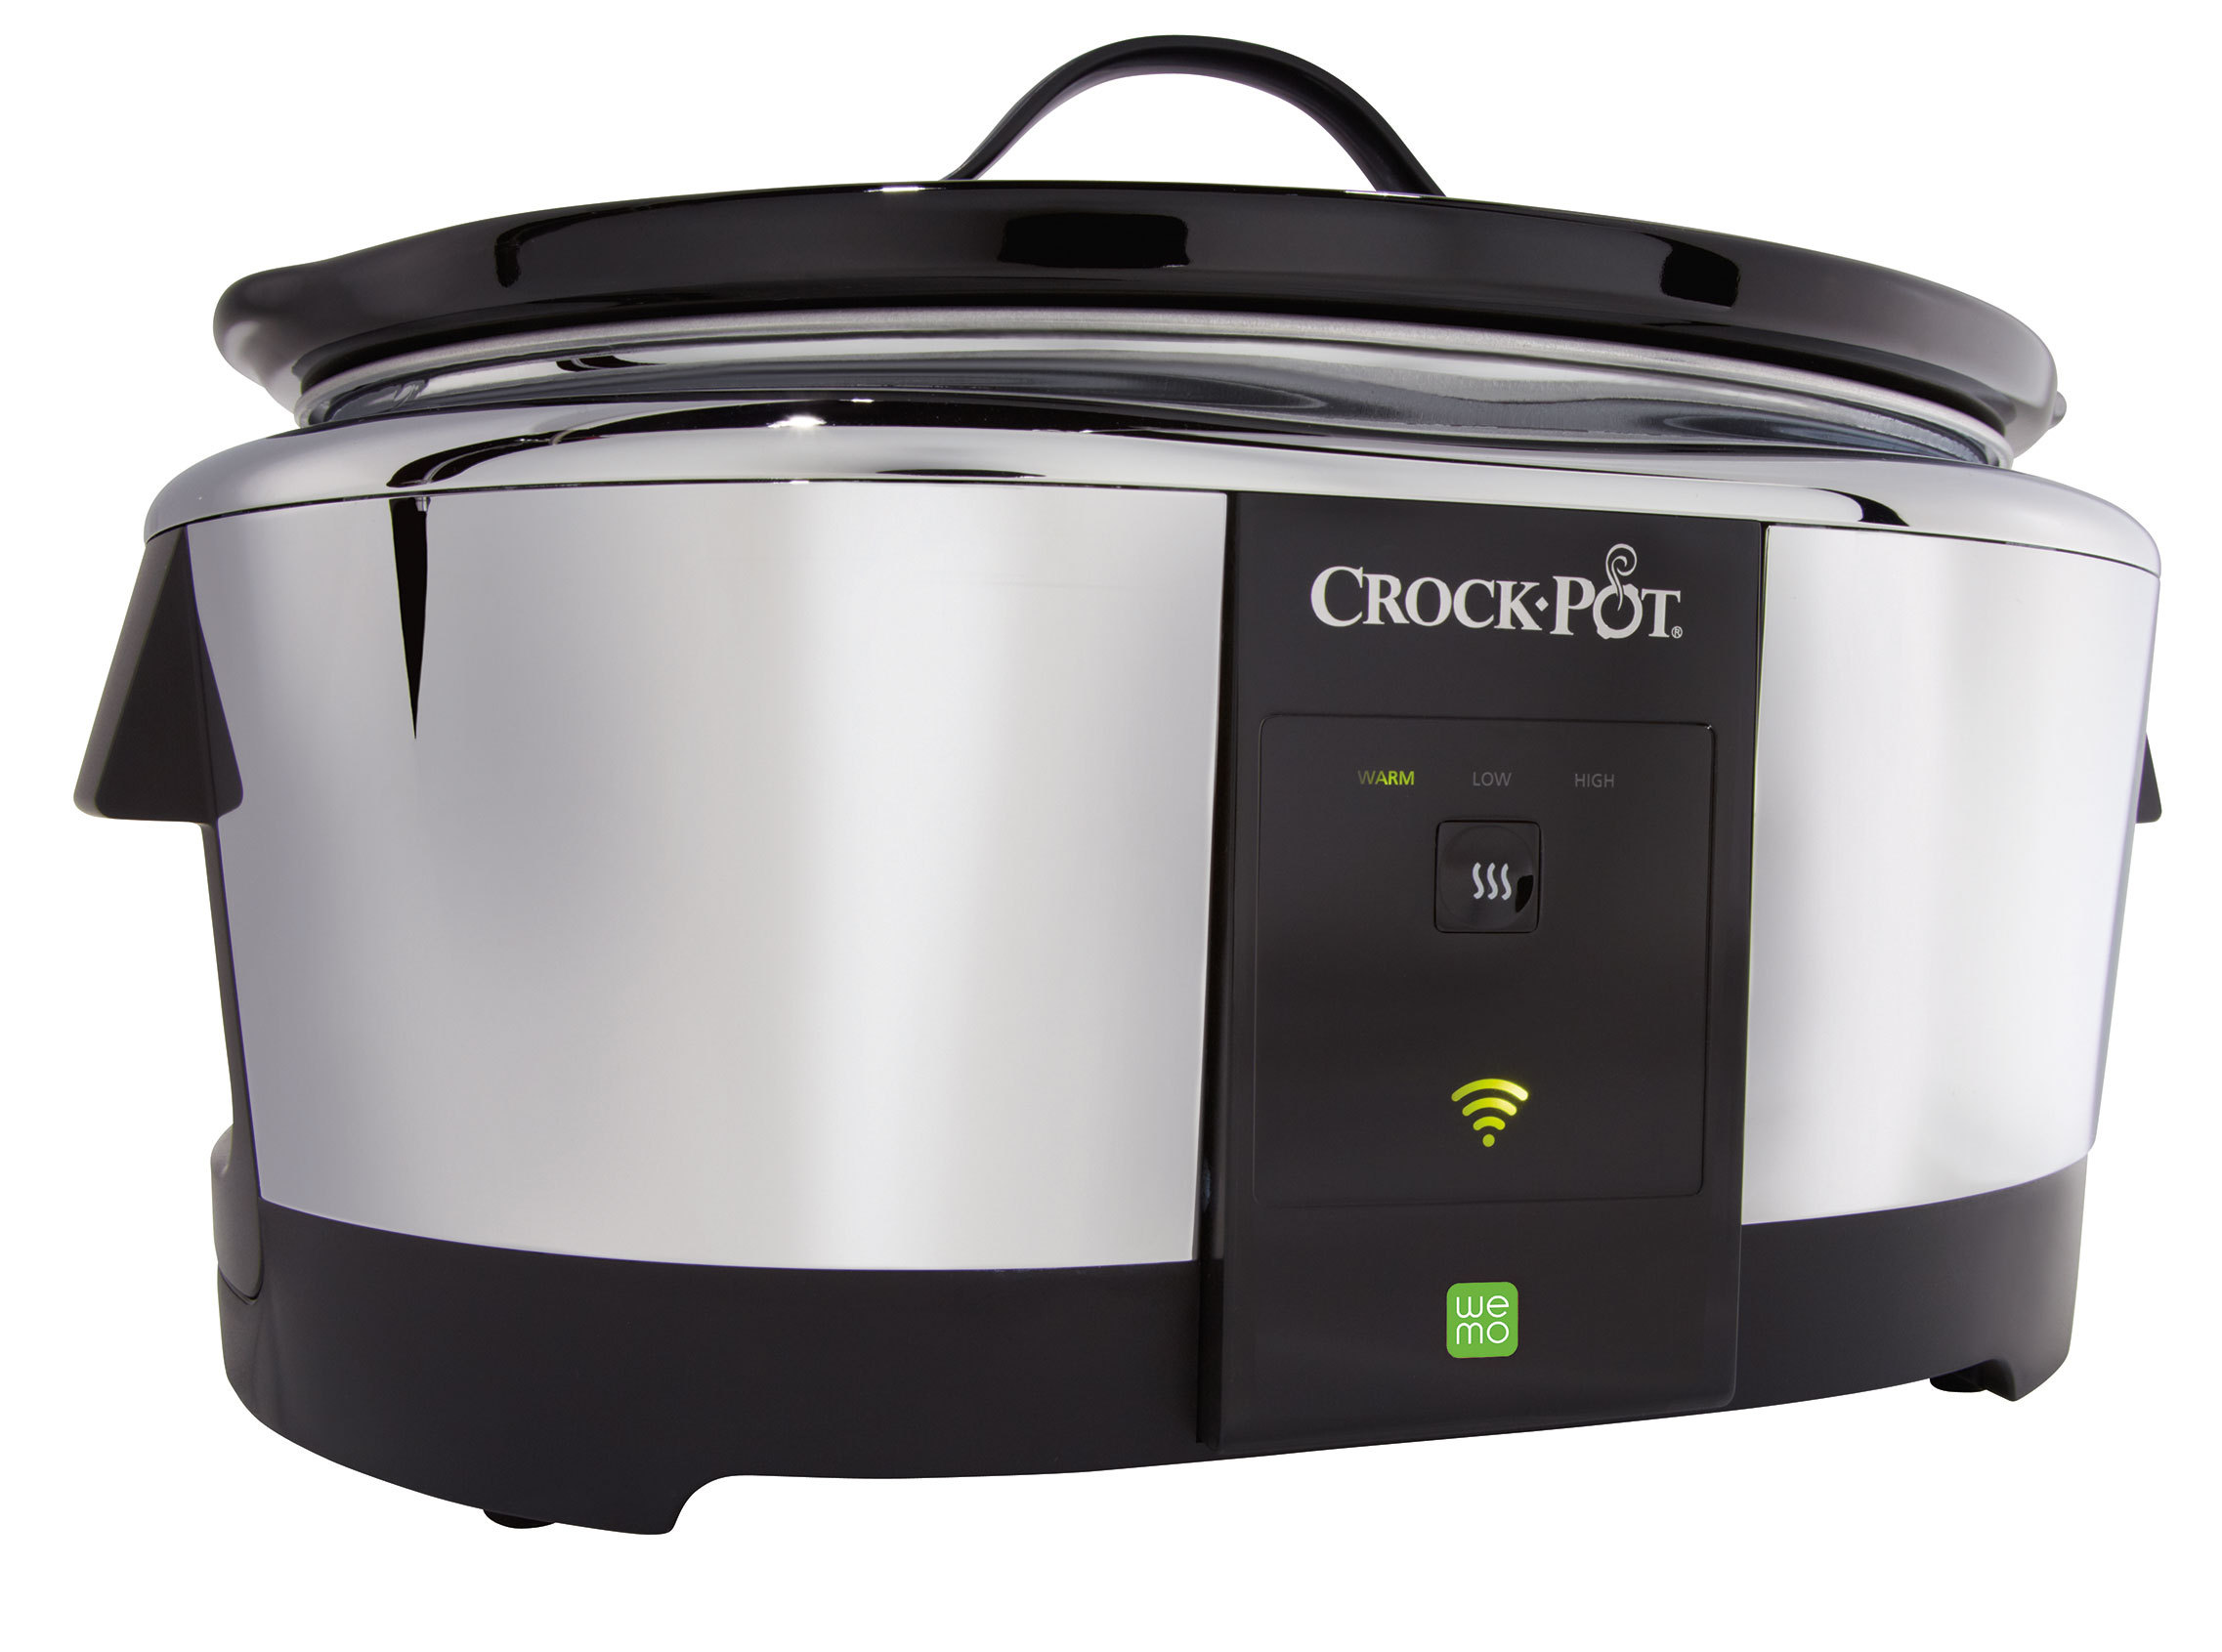 Crock-Pot® Smart Slow Cooker enabled by Wemo. (Photo: Business Wire)